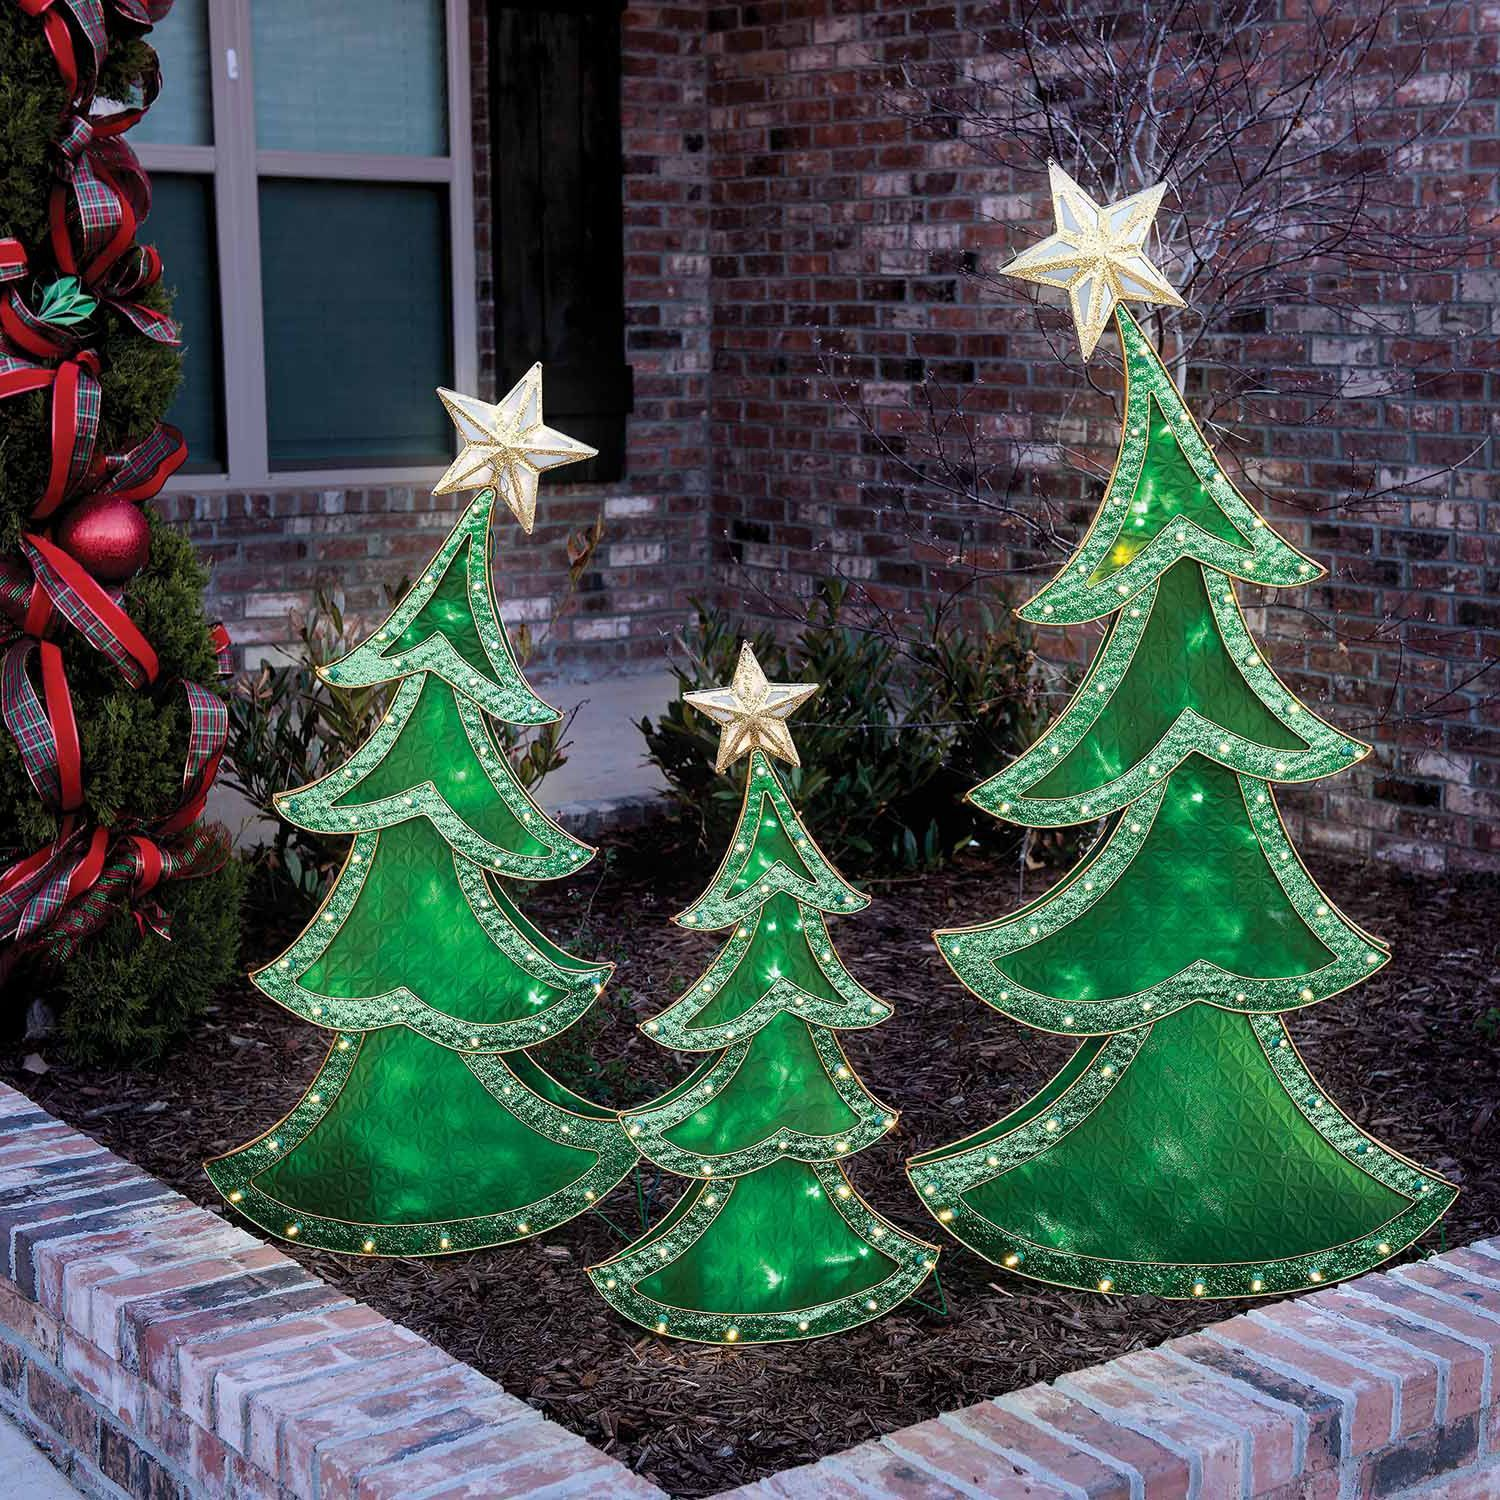 led decorative christmas trees set of 3 36 48 and 60 17998 at sams club - Sams Christmas Decorations